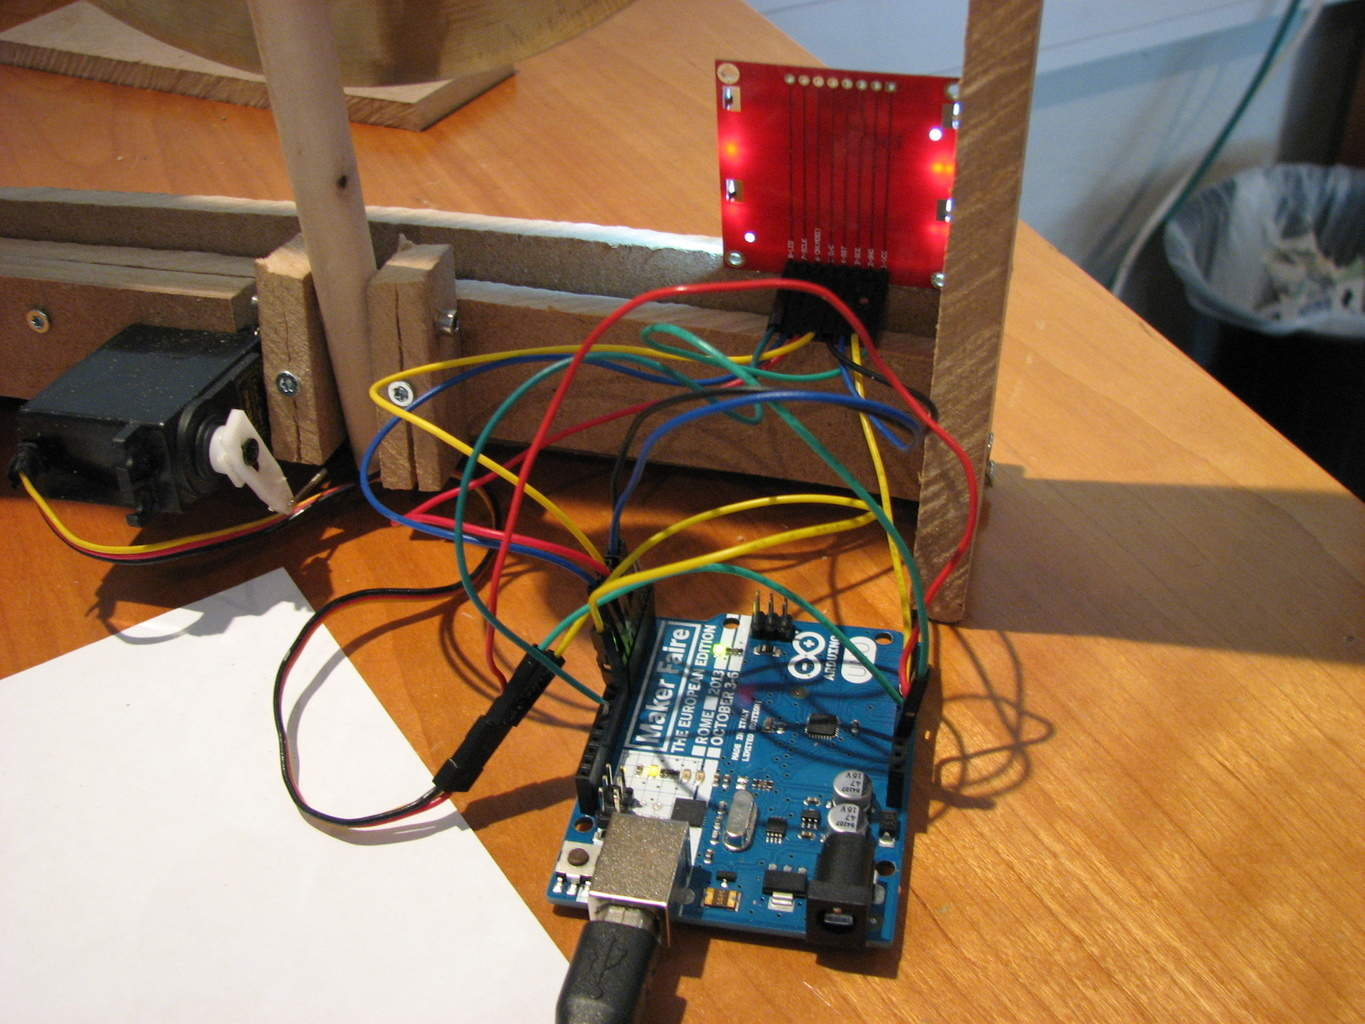 Timer Project With Gong Build Electronic Circuits How To Stopwatch Circuit An Arduino Uno Display Servo